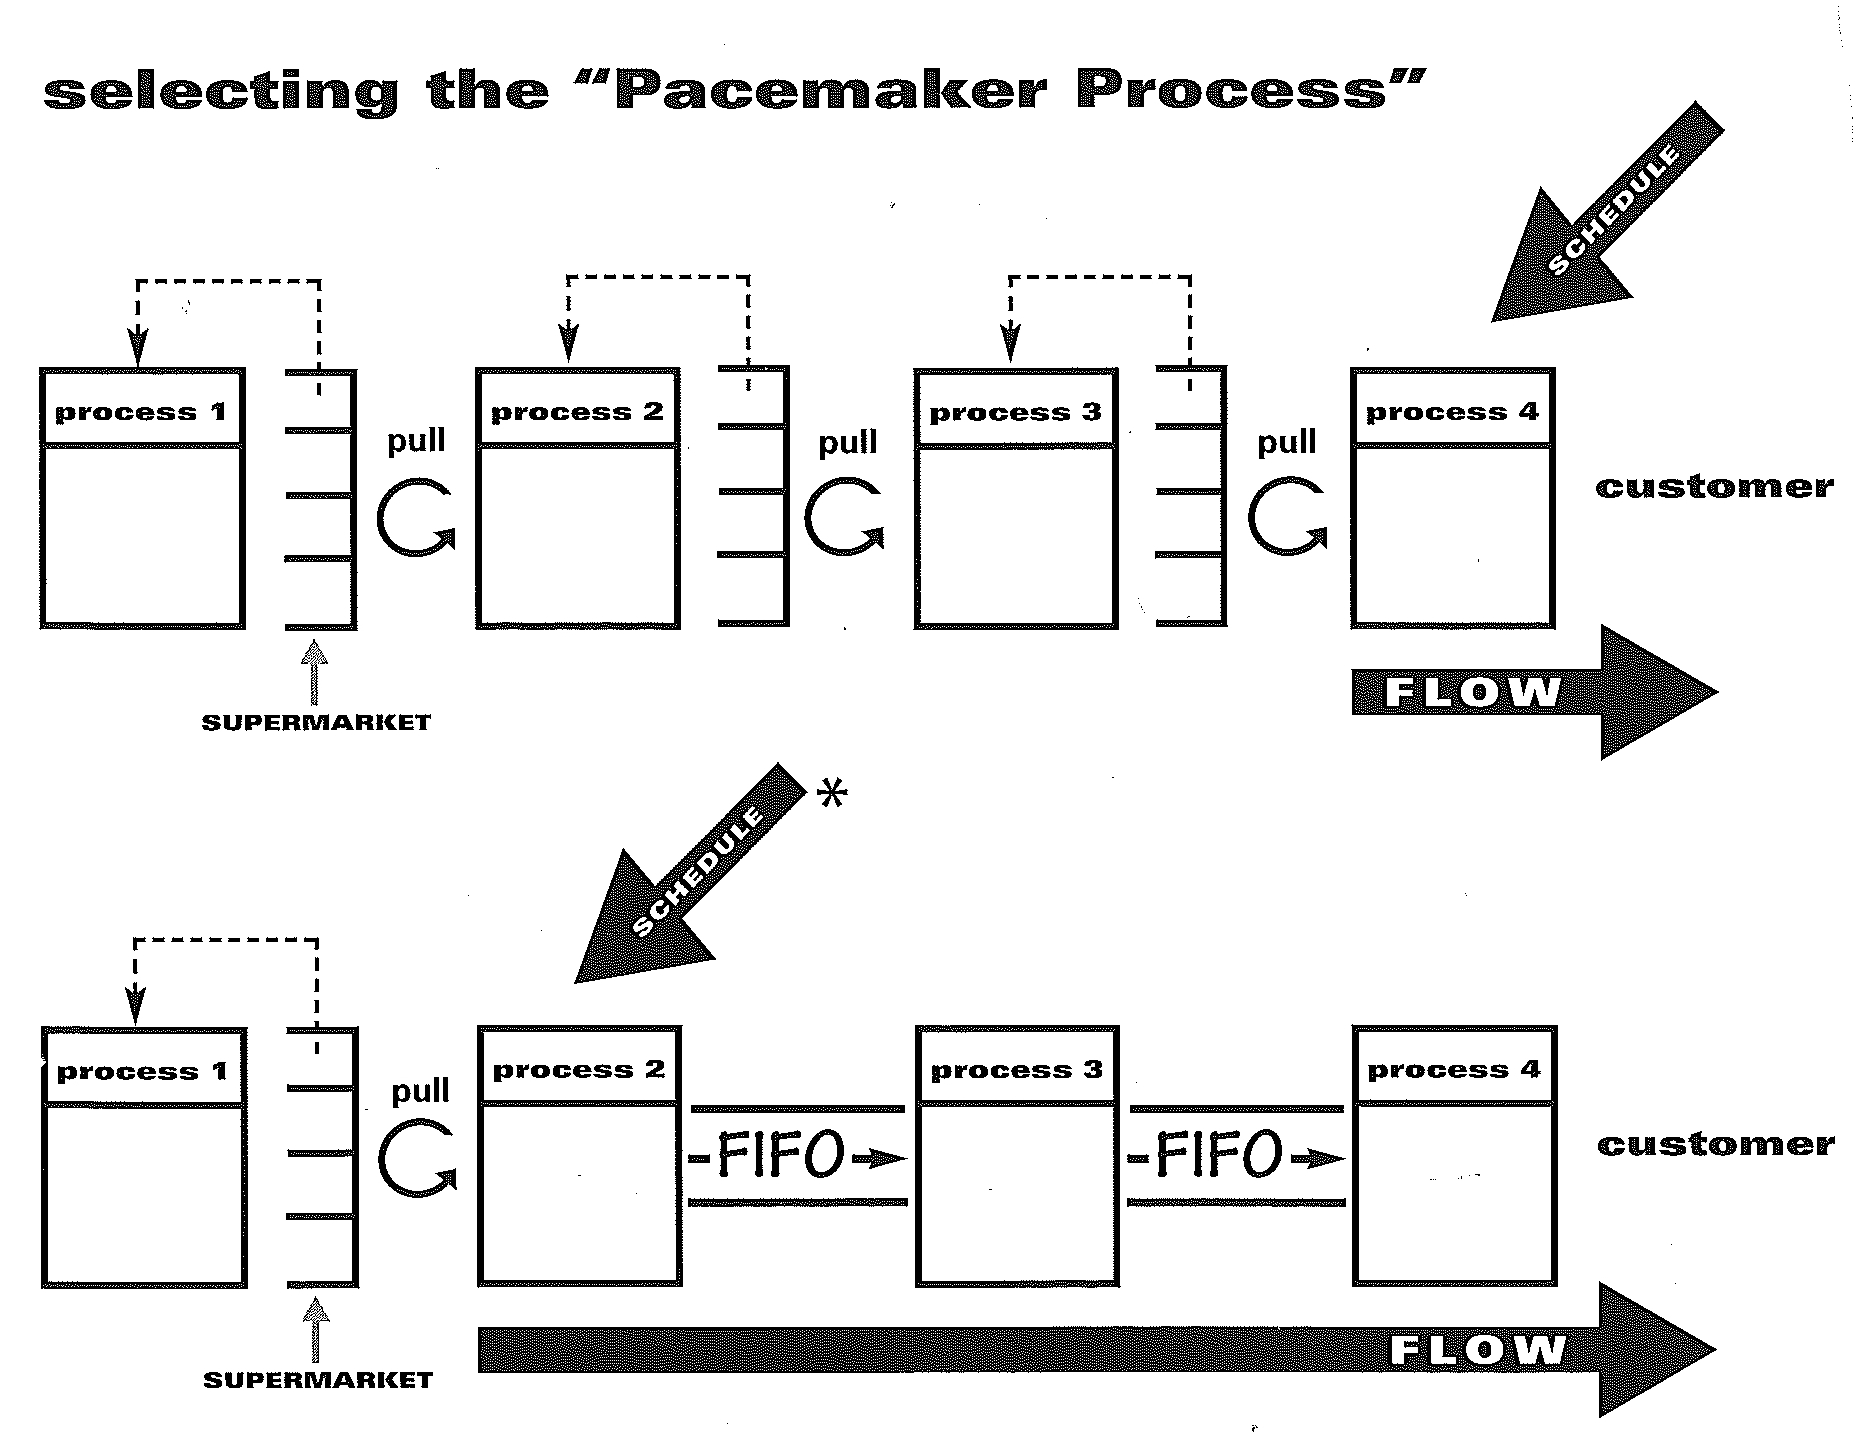 value stream mapping thesis Value stream mapping thesis published 22-nov-2015 23:23 from riley100125 application of value stream mapping in product development this research addresses the application of lean manufacturing concepts to the discrete production sector of a metal fabrication company in malaysia.